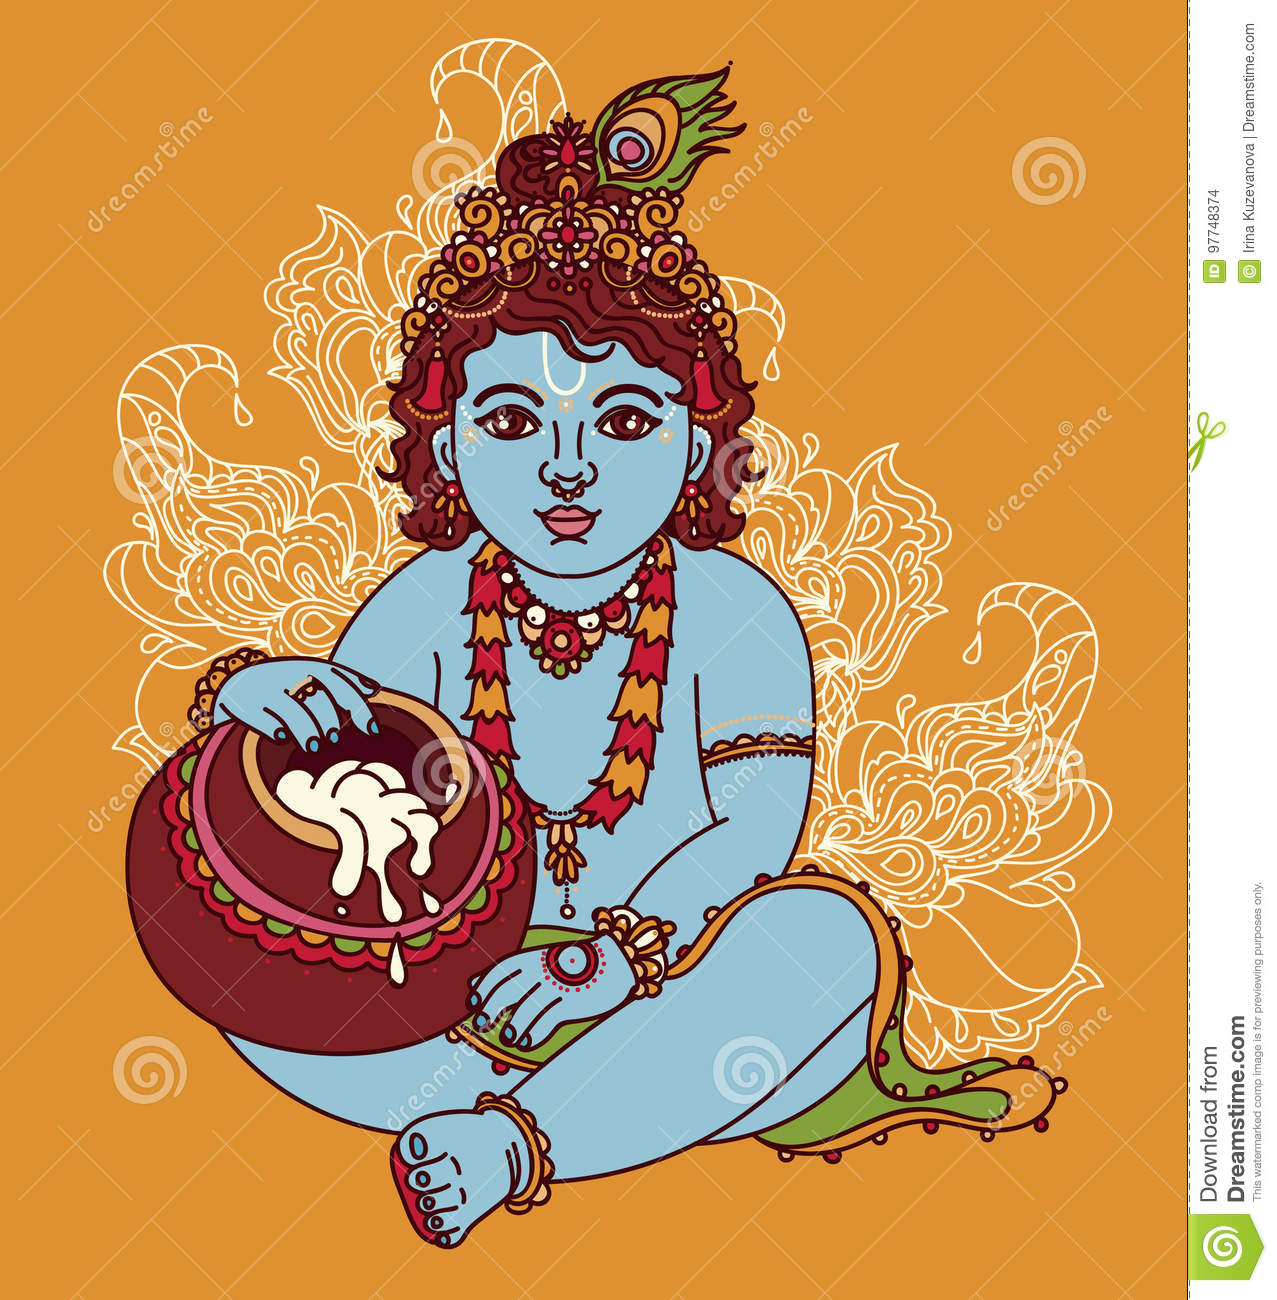 little krishna with a pot of butter stock vector illustration of